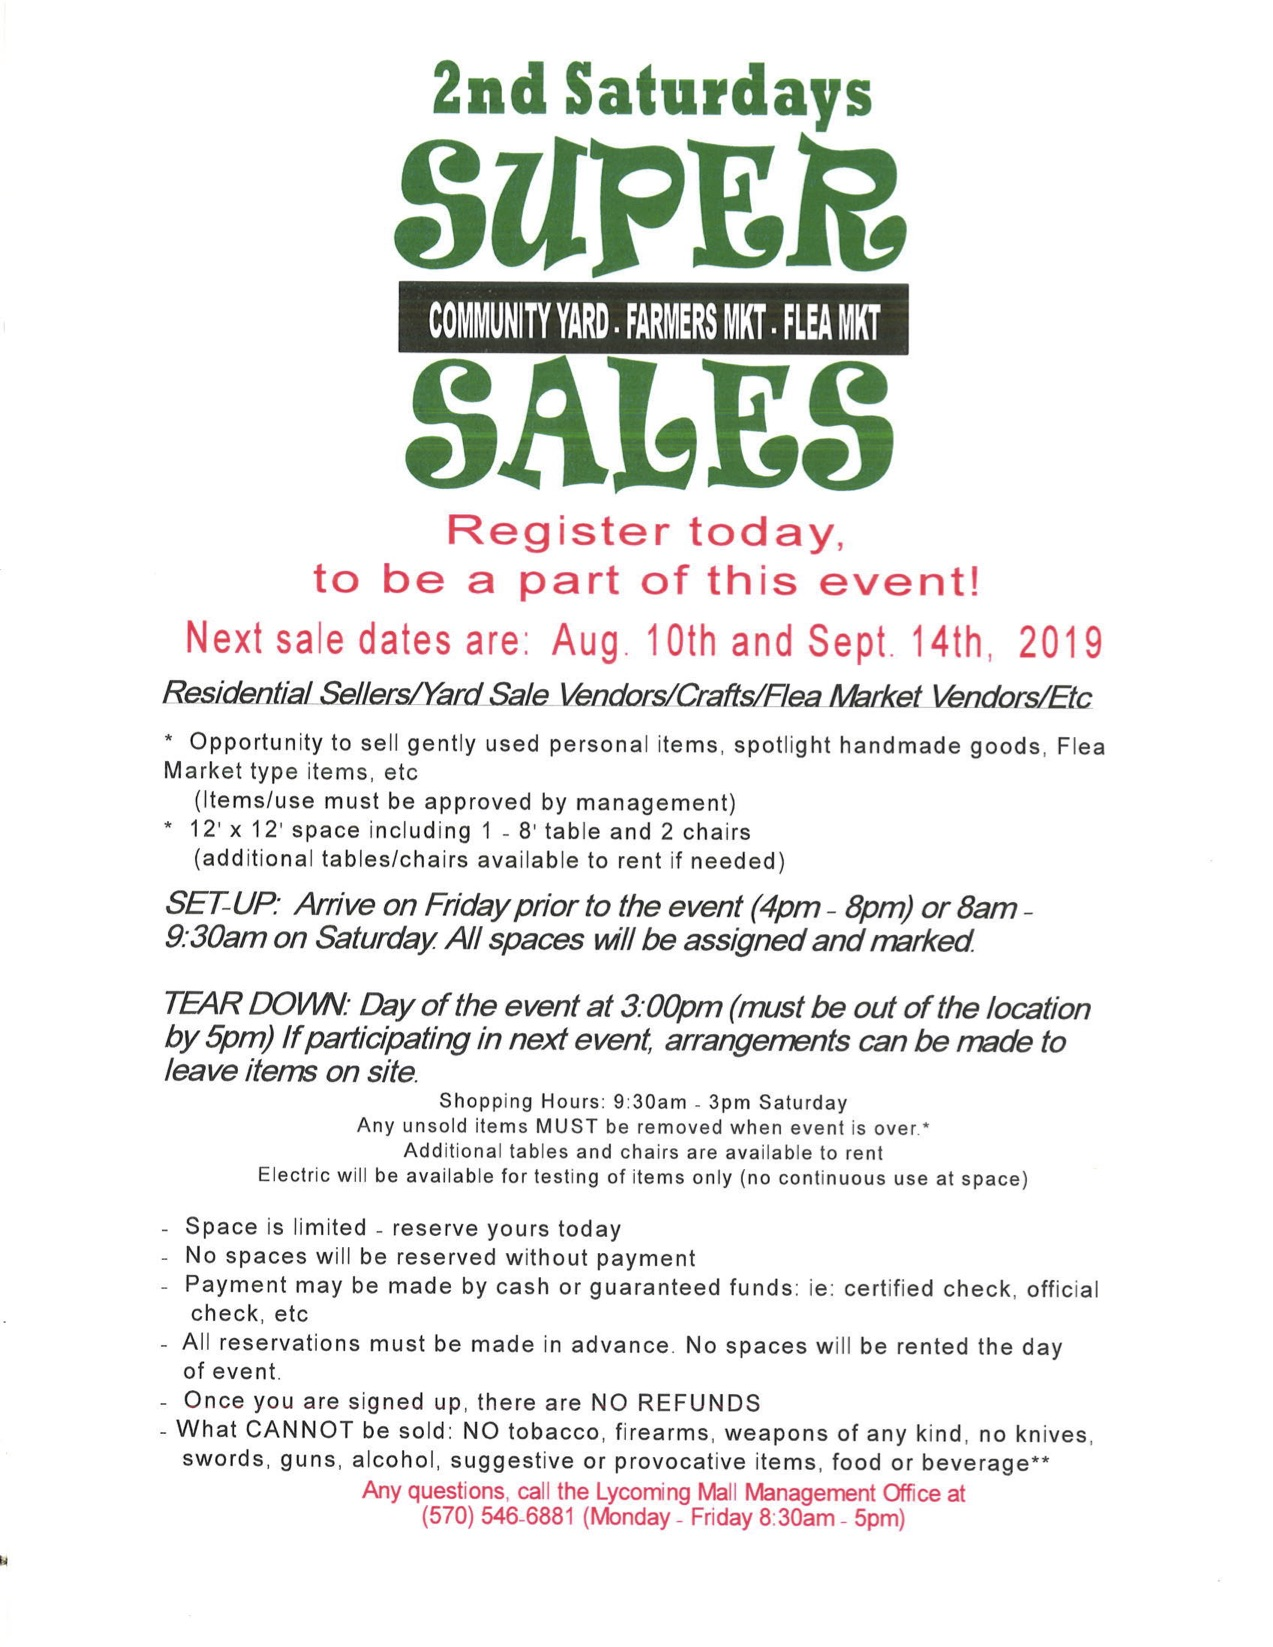 Lycoming Mall's 2nd Saturday Super Sales